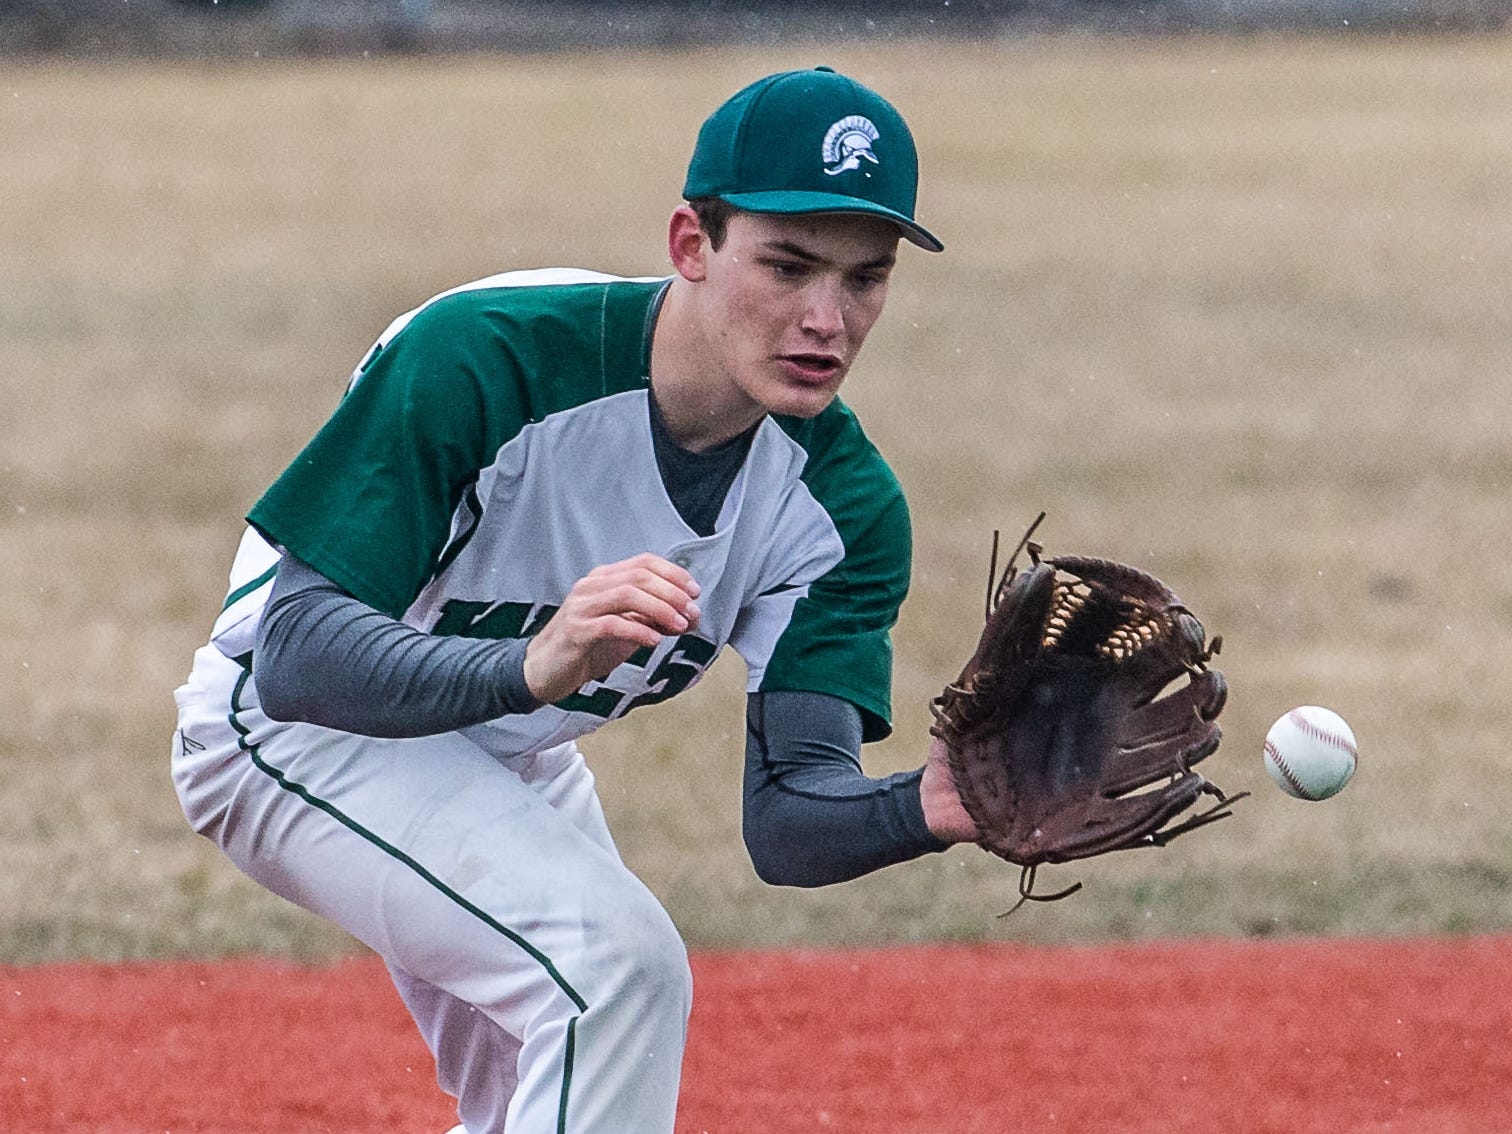 Wauwatosa West third baseman James Lee (2) takes one on the hop during the game at Brookfield Central on Thursday, April 4, 2019.